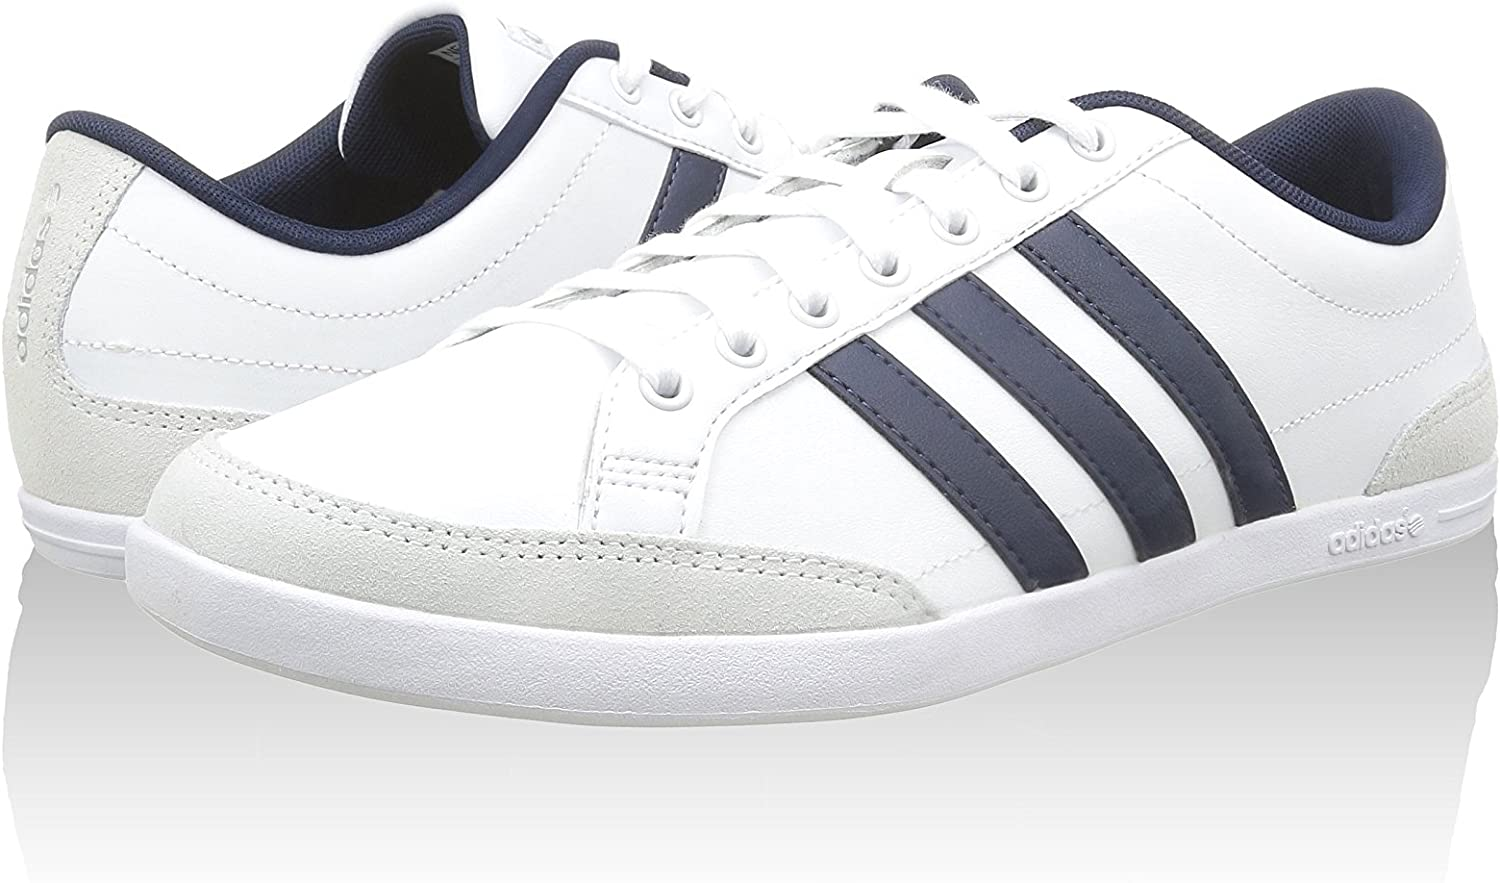 adidas Neo Caflaire Low-top Trainers F98433 white Size: 8.5 UK ...